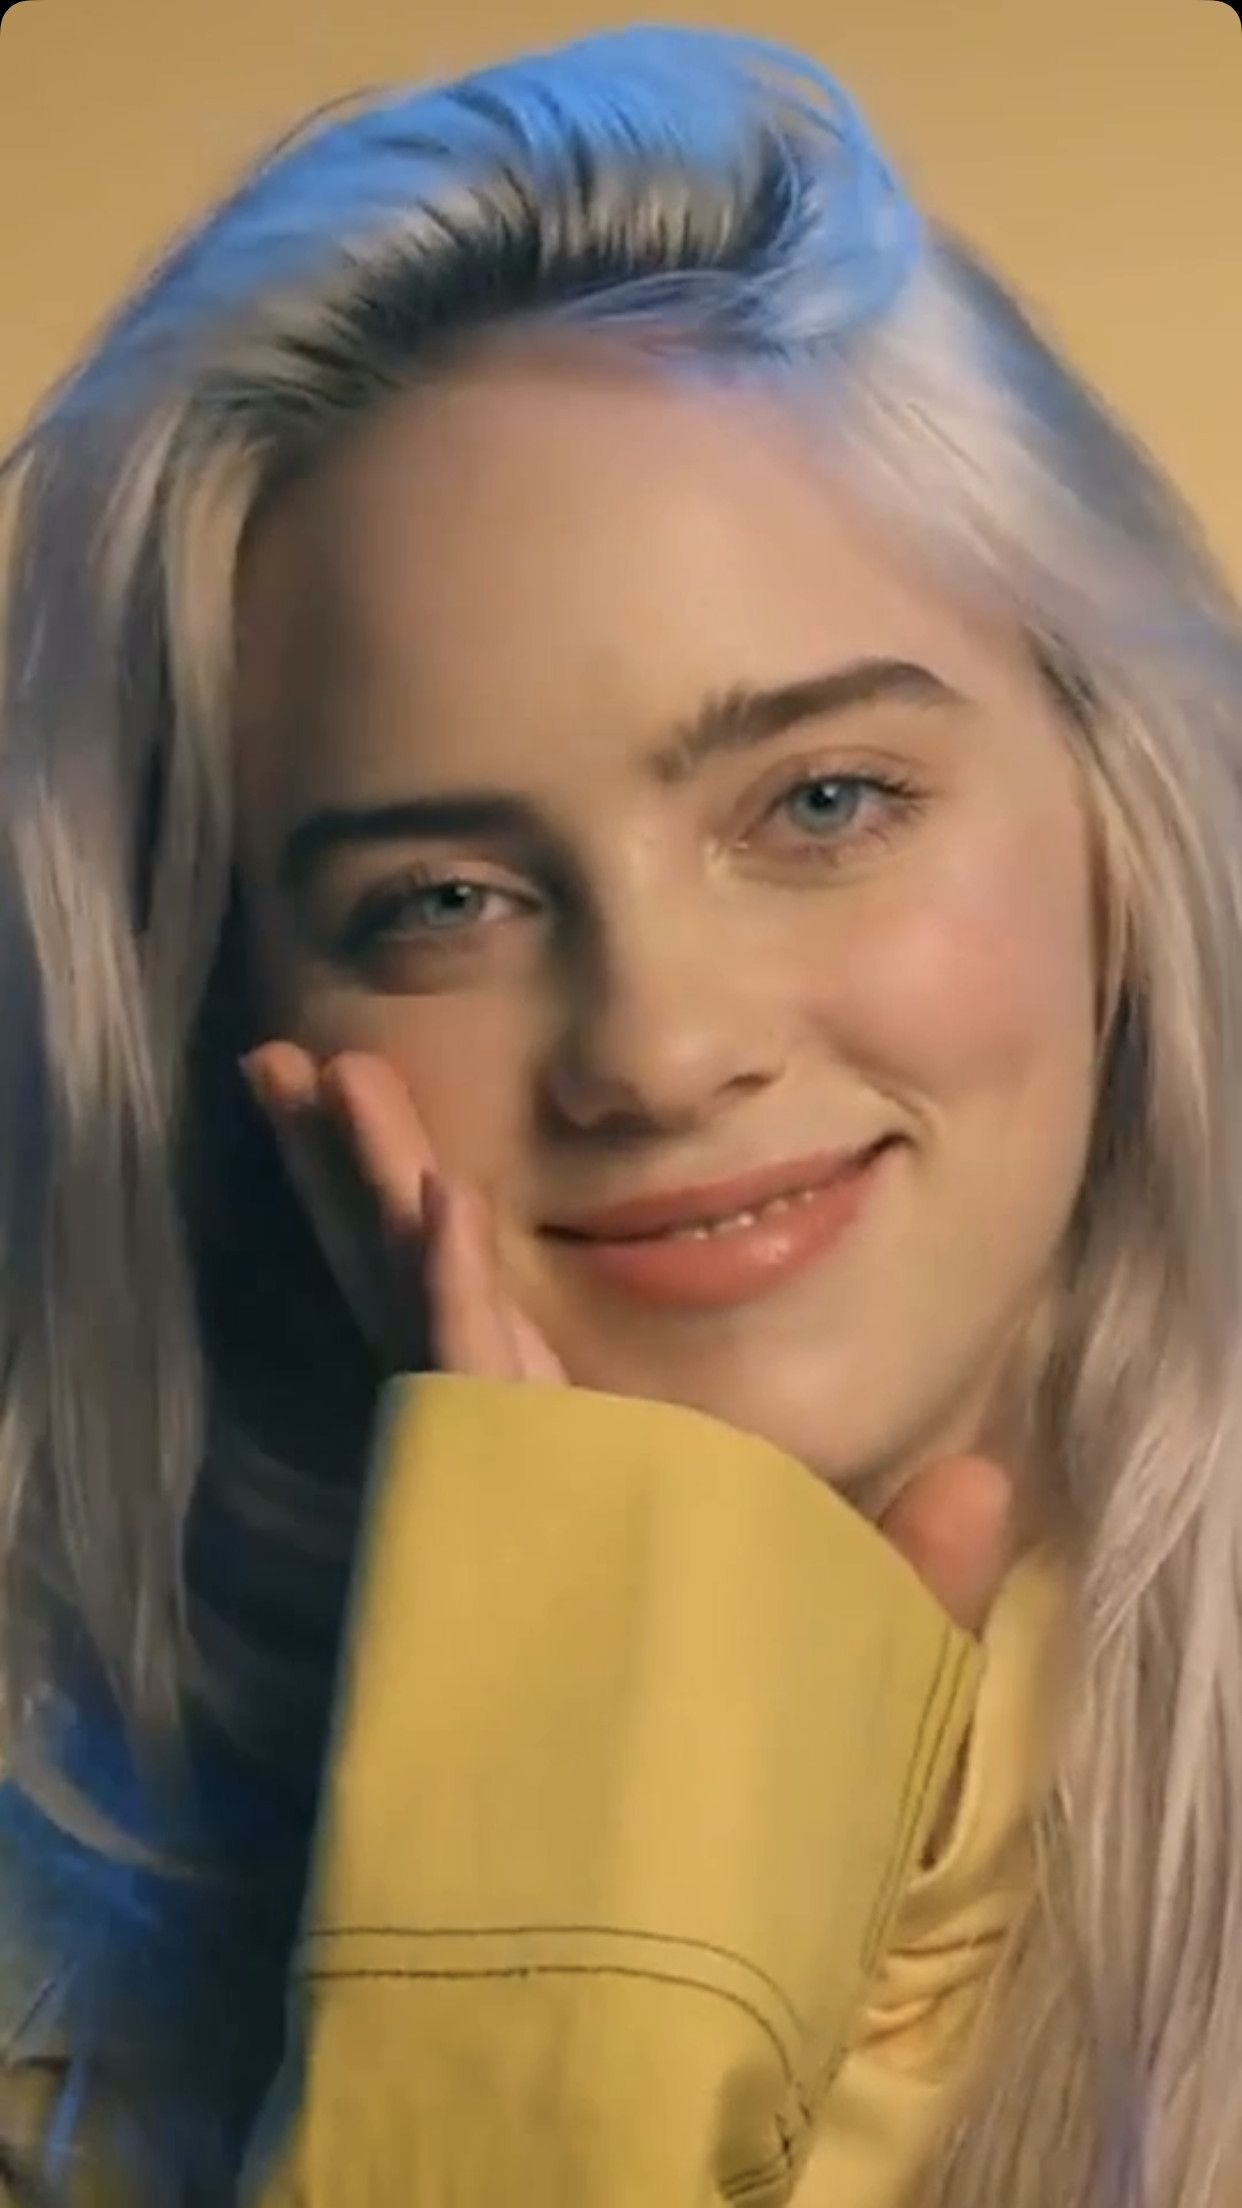 My Gf Com pictures of billie eilish smiling inspirational pinh